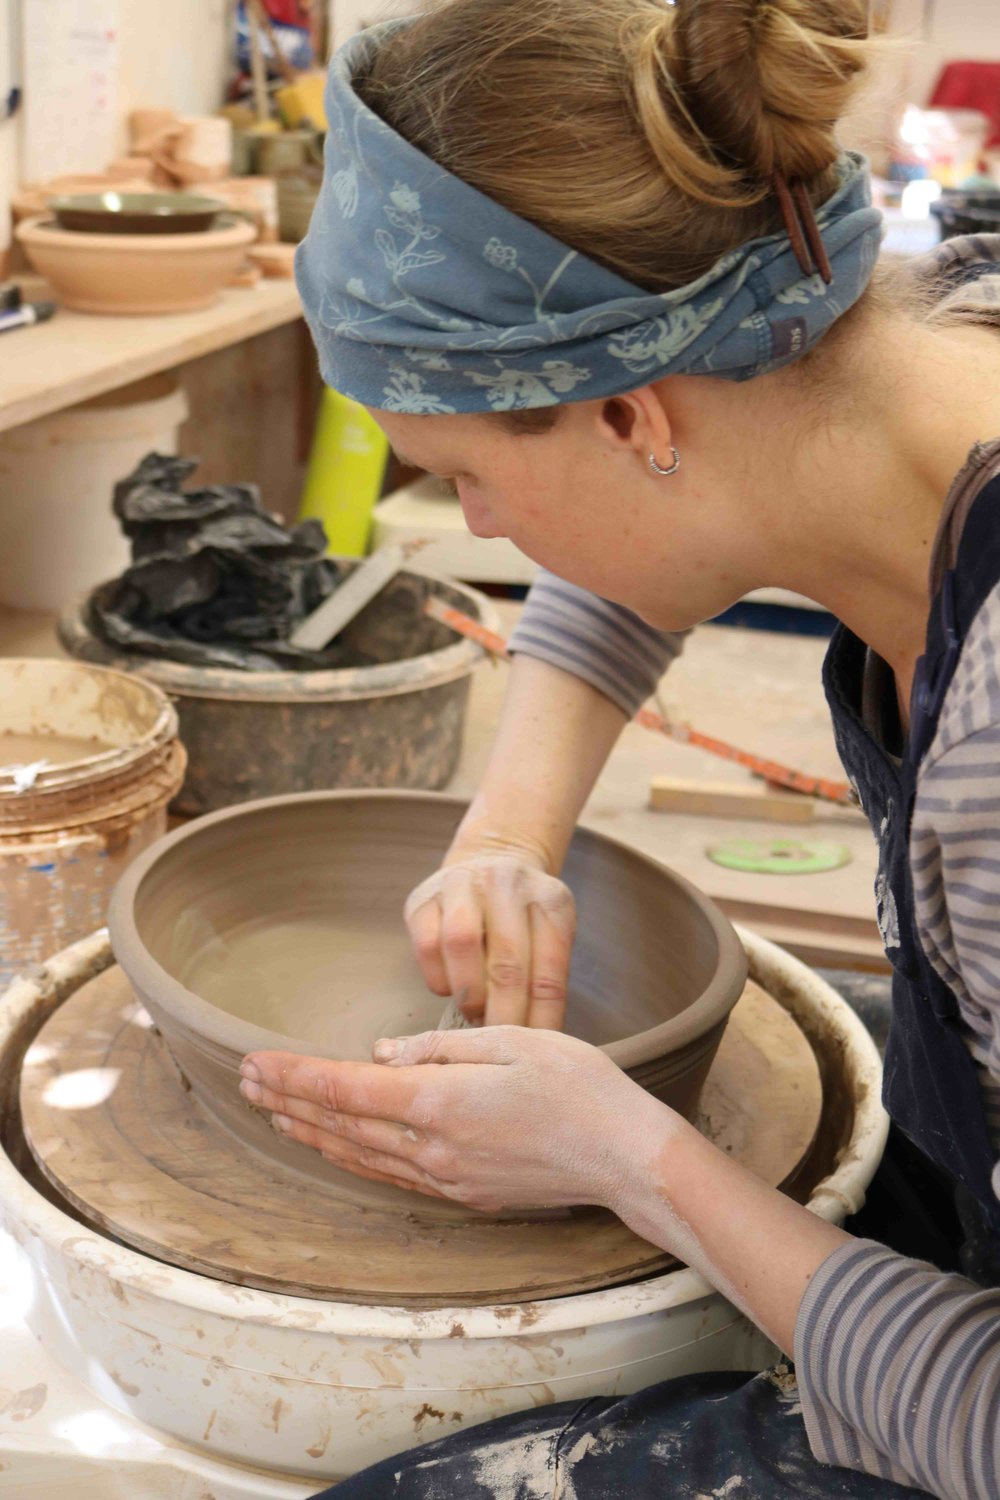 Working on an oval dish